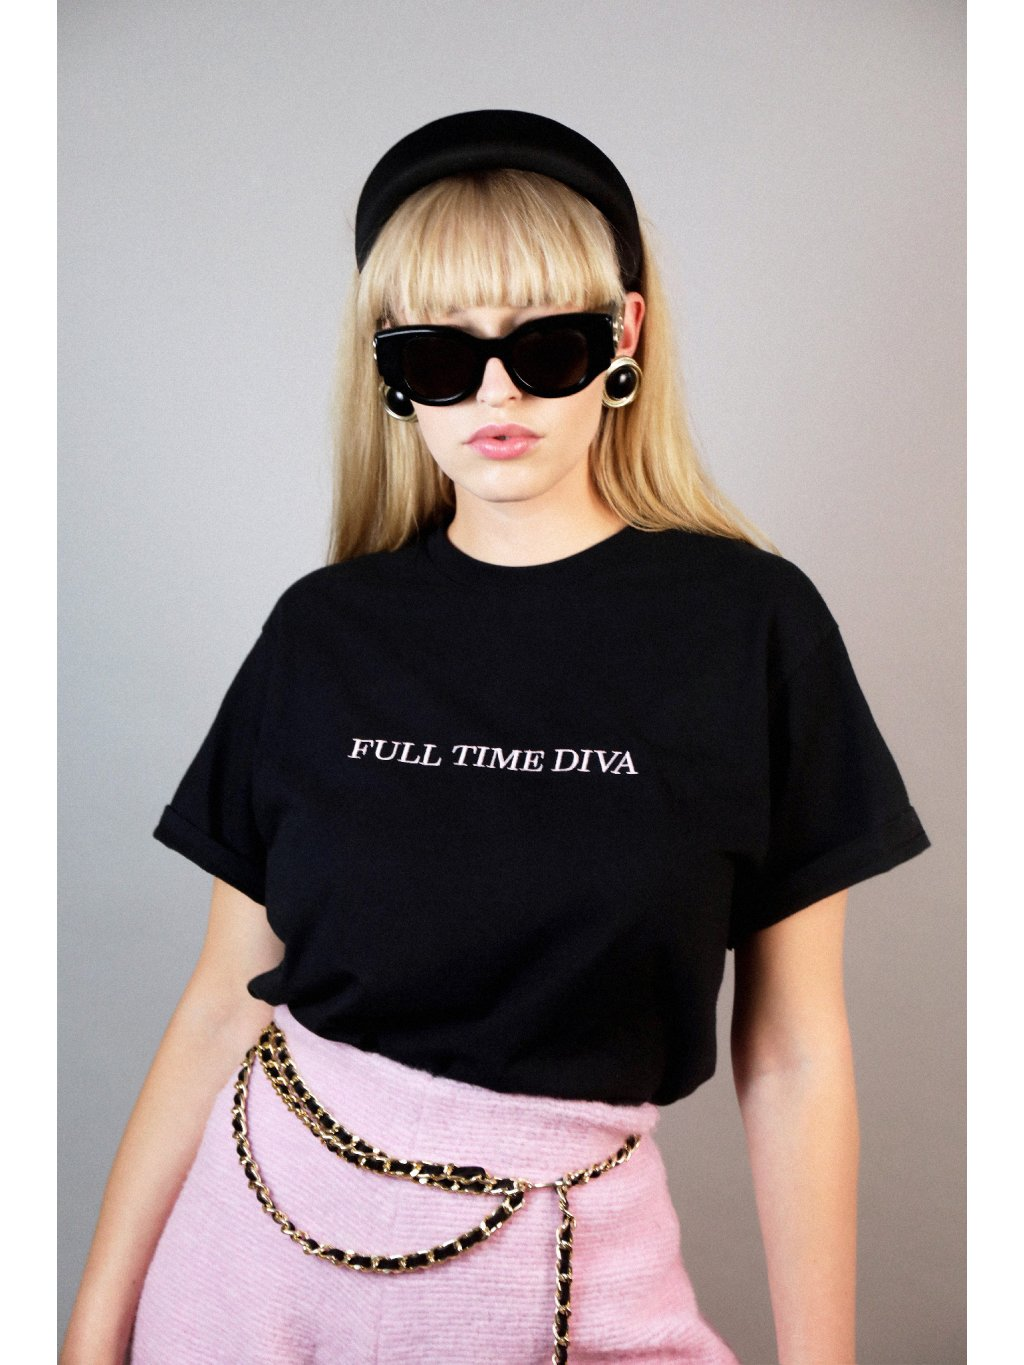 Full time diva t-shirt embroidered